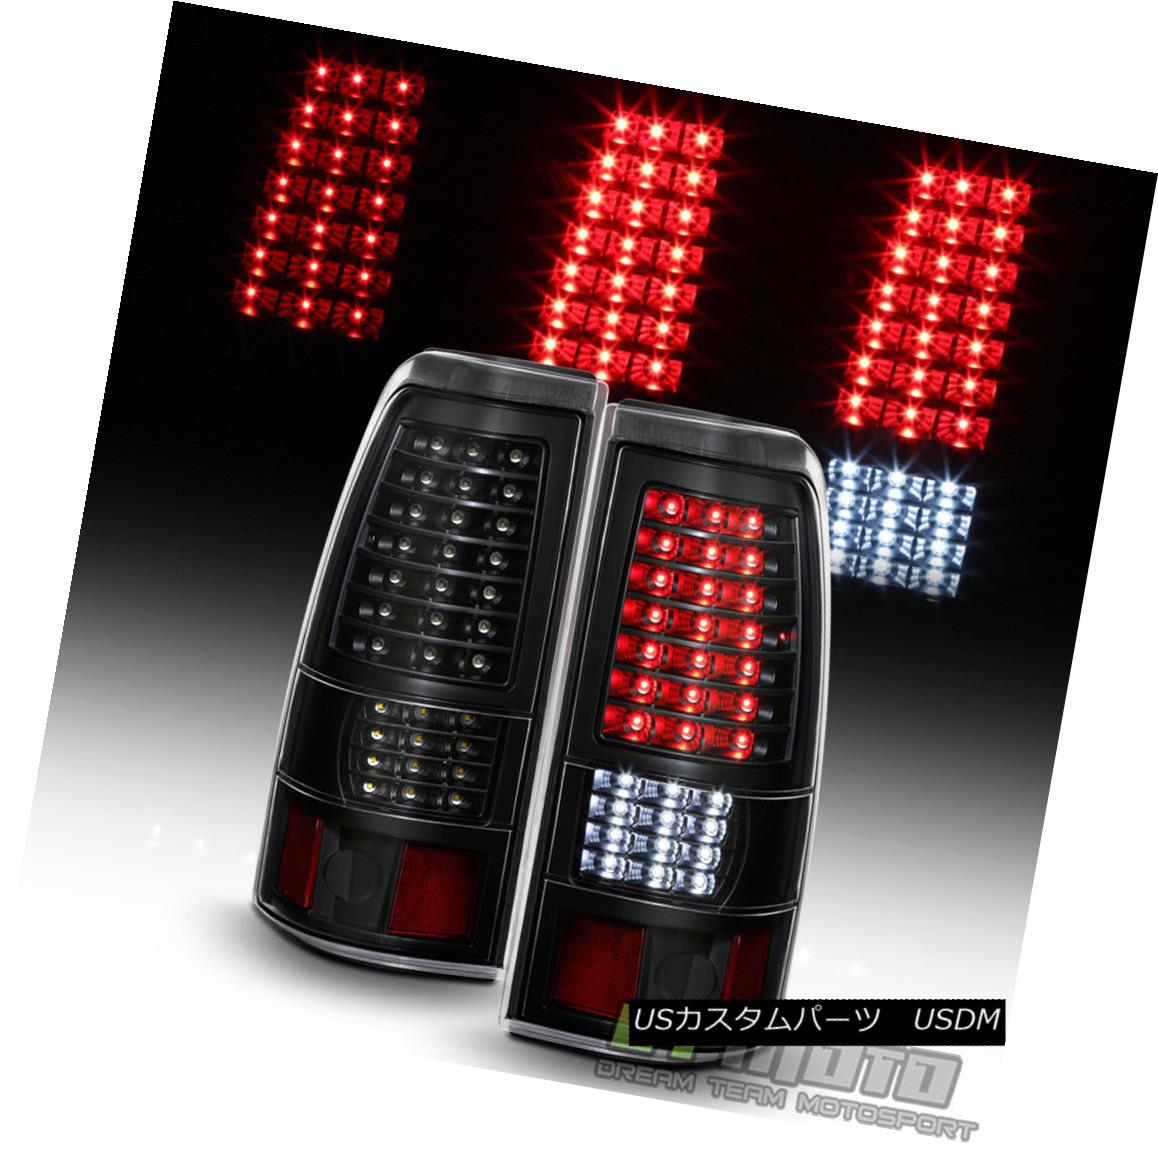 テールライト Black 1999-2006 GMC Sierra 1999-2002 Chevy Silverado Full LED Tail Lights Lamps ブラック1999-2006 GMC Sierra 1999-2002 Chevy SilveradoフルLEDテールライトランプ